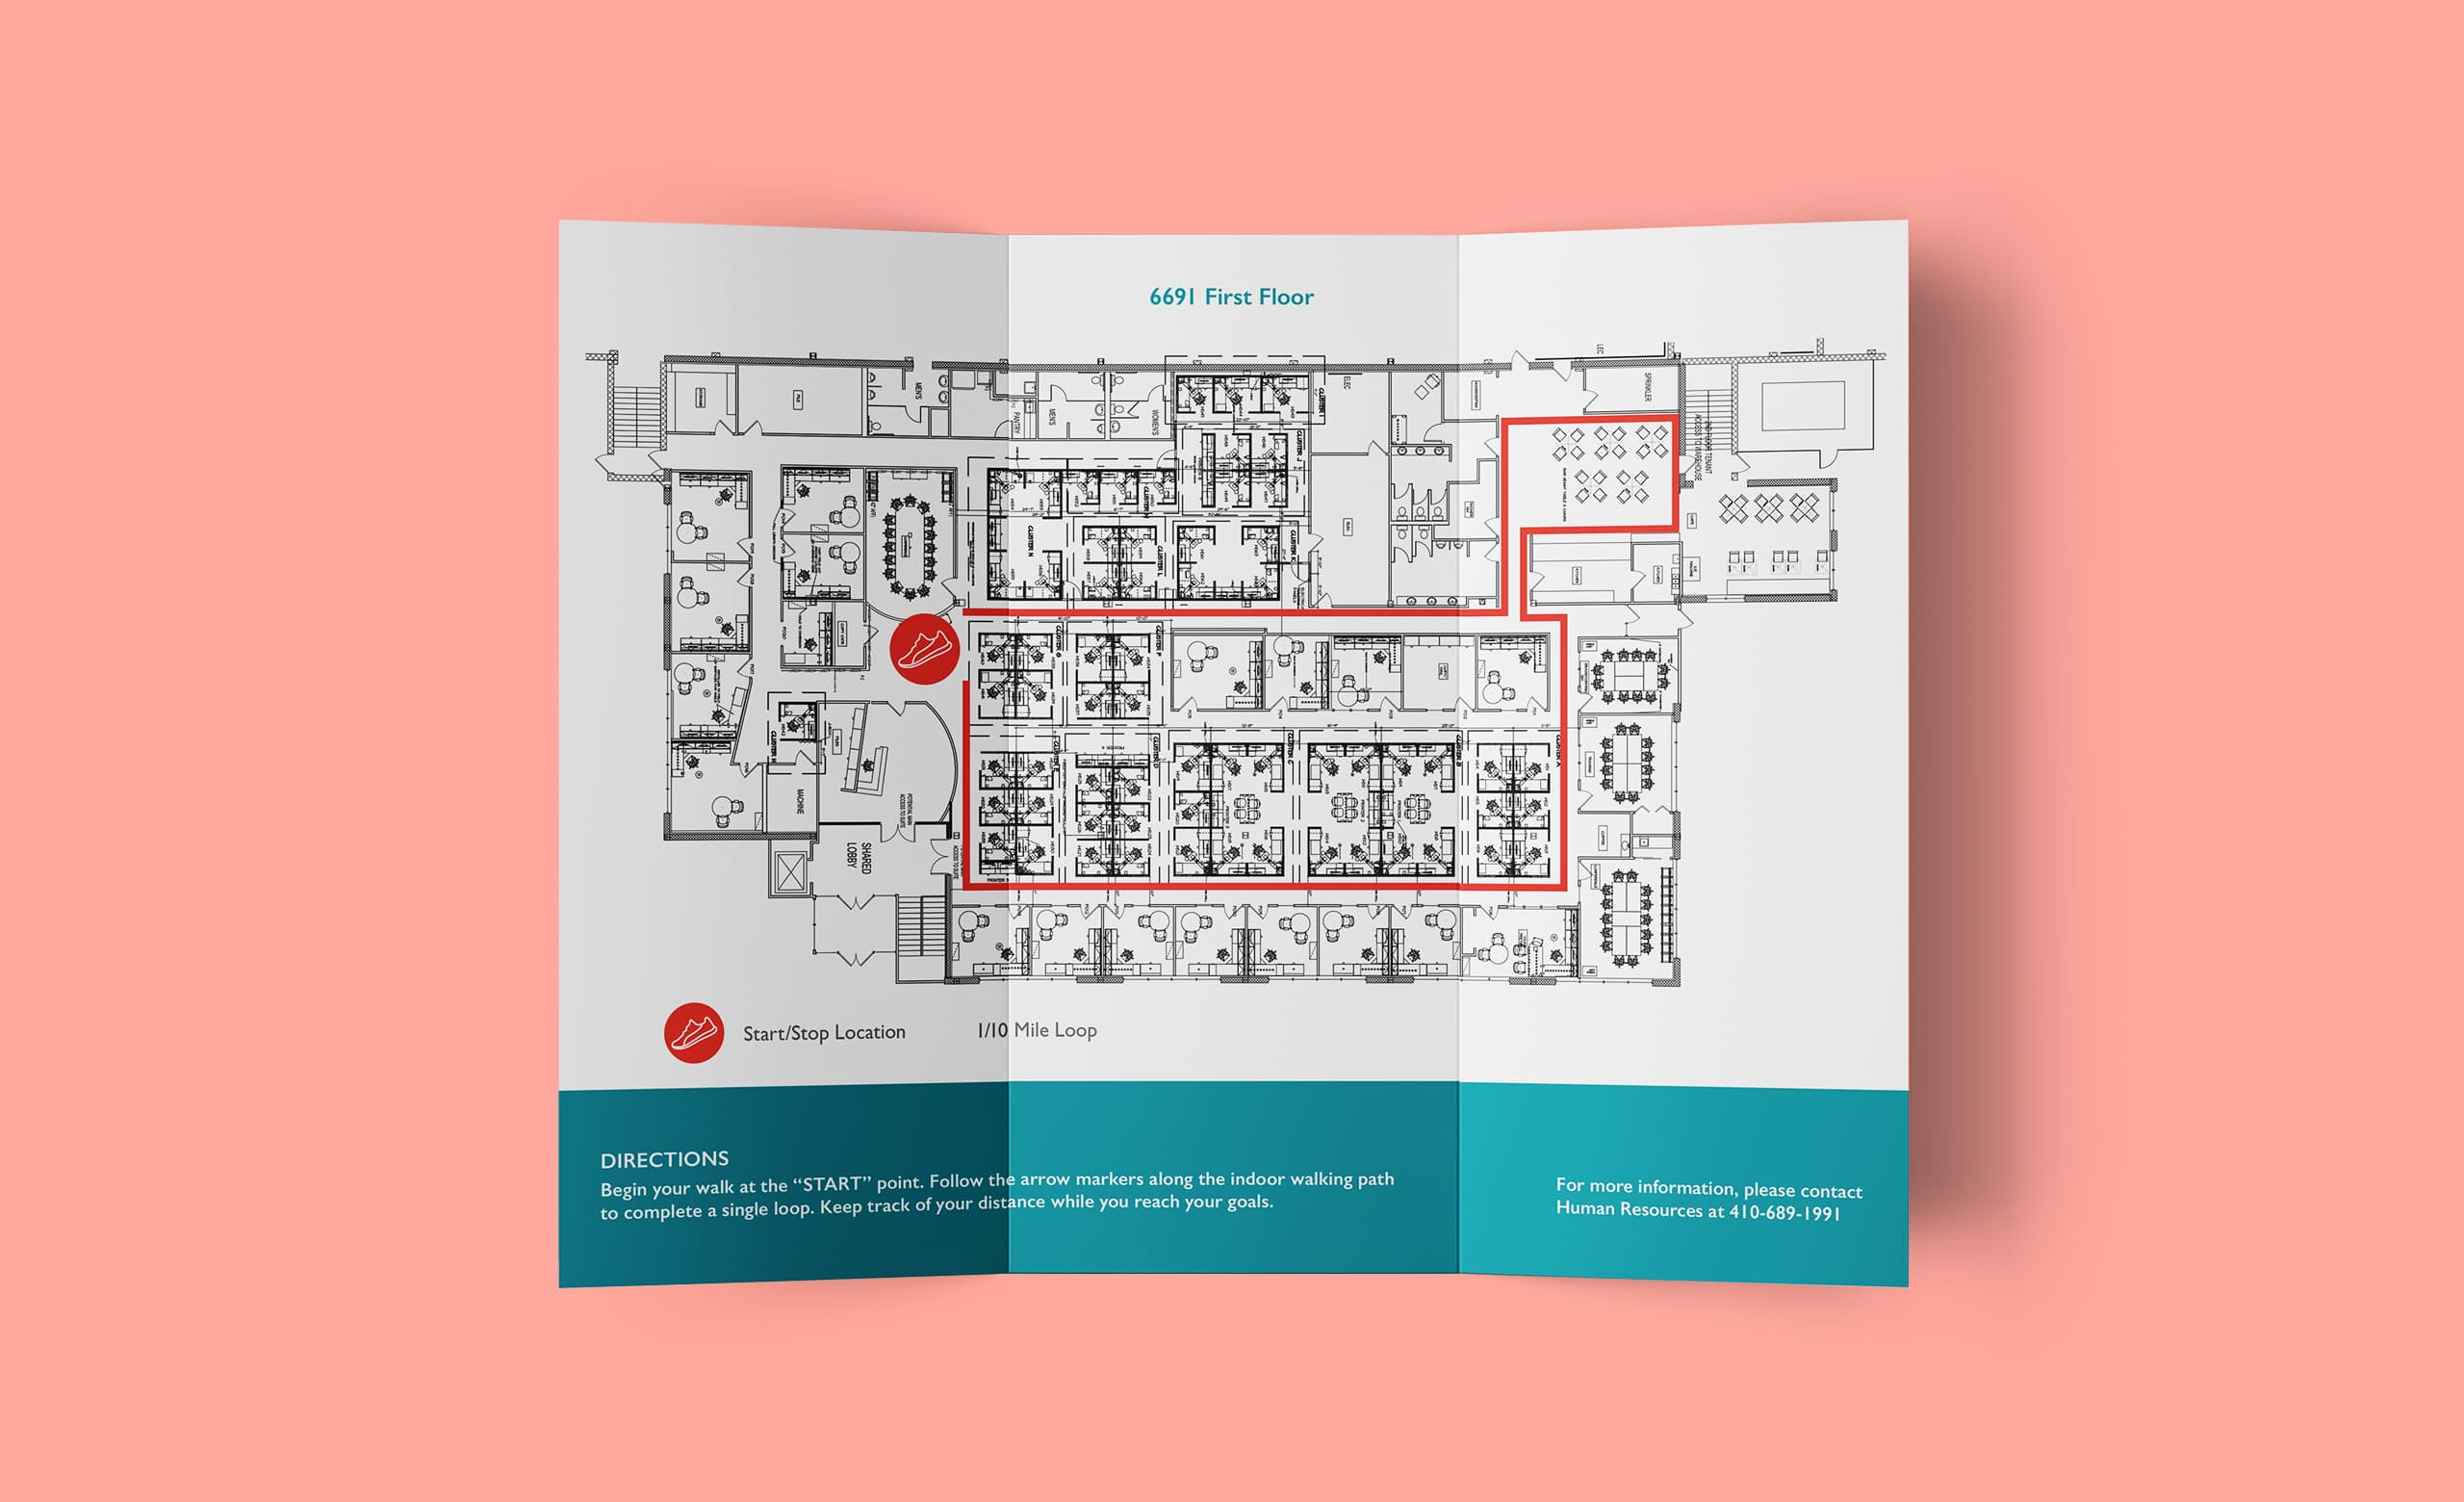 The front of a brochure for Johns Hopkins Healthcare, showing a map of the workplace and where employees could take a long walk.